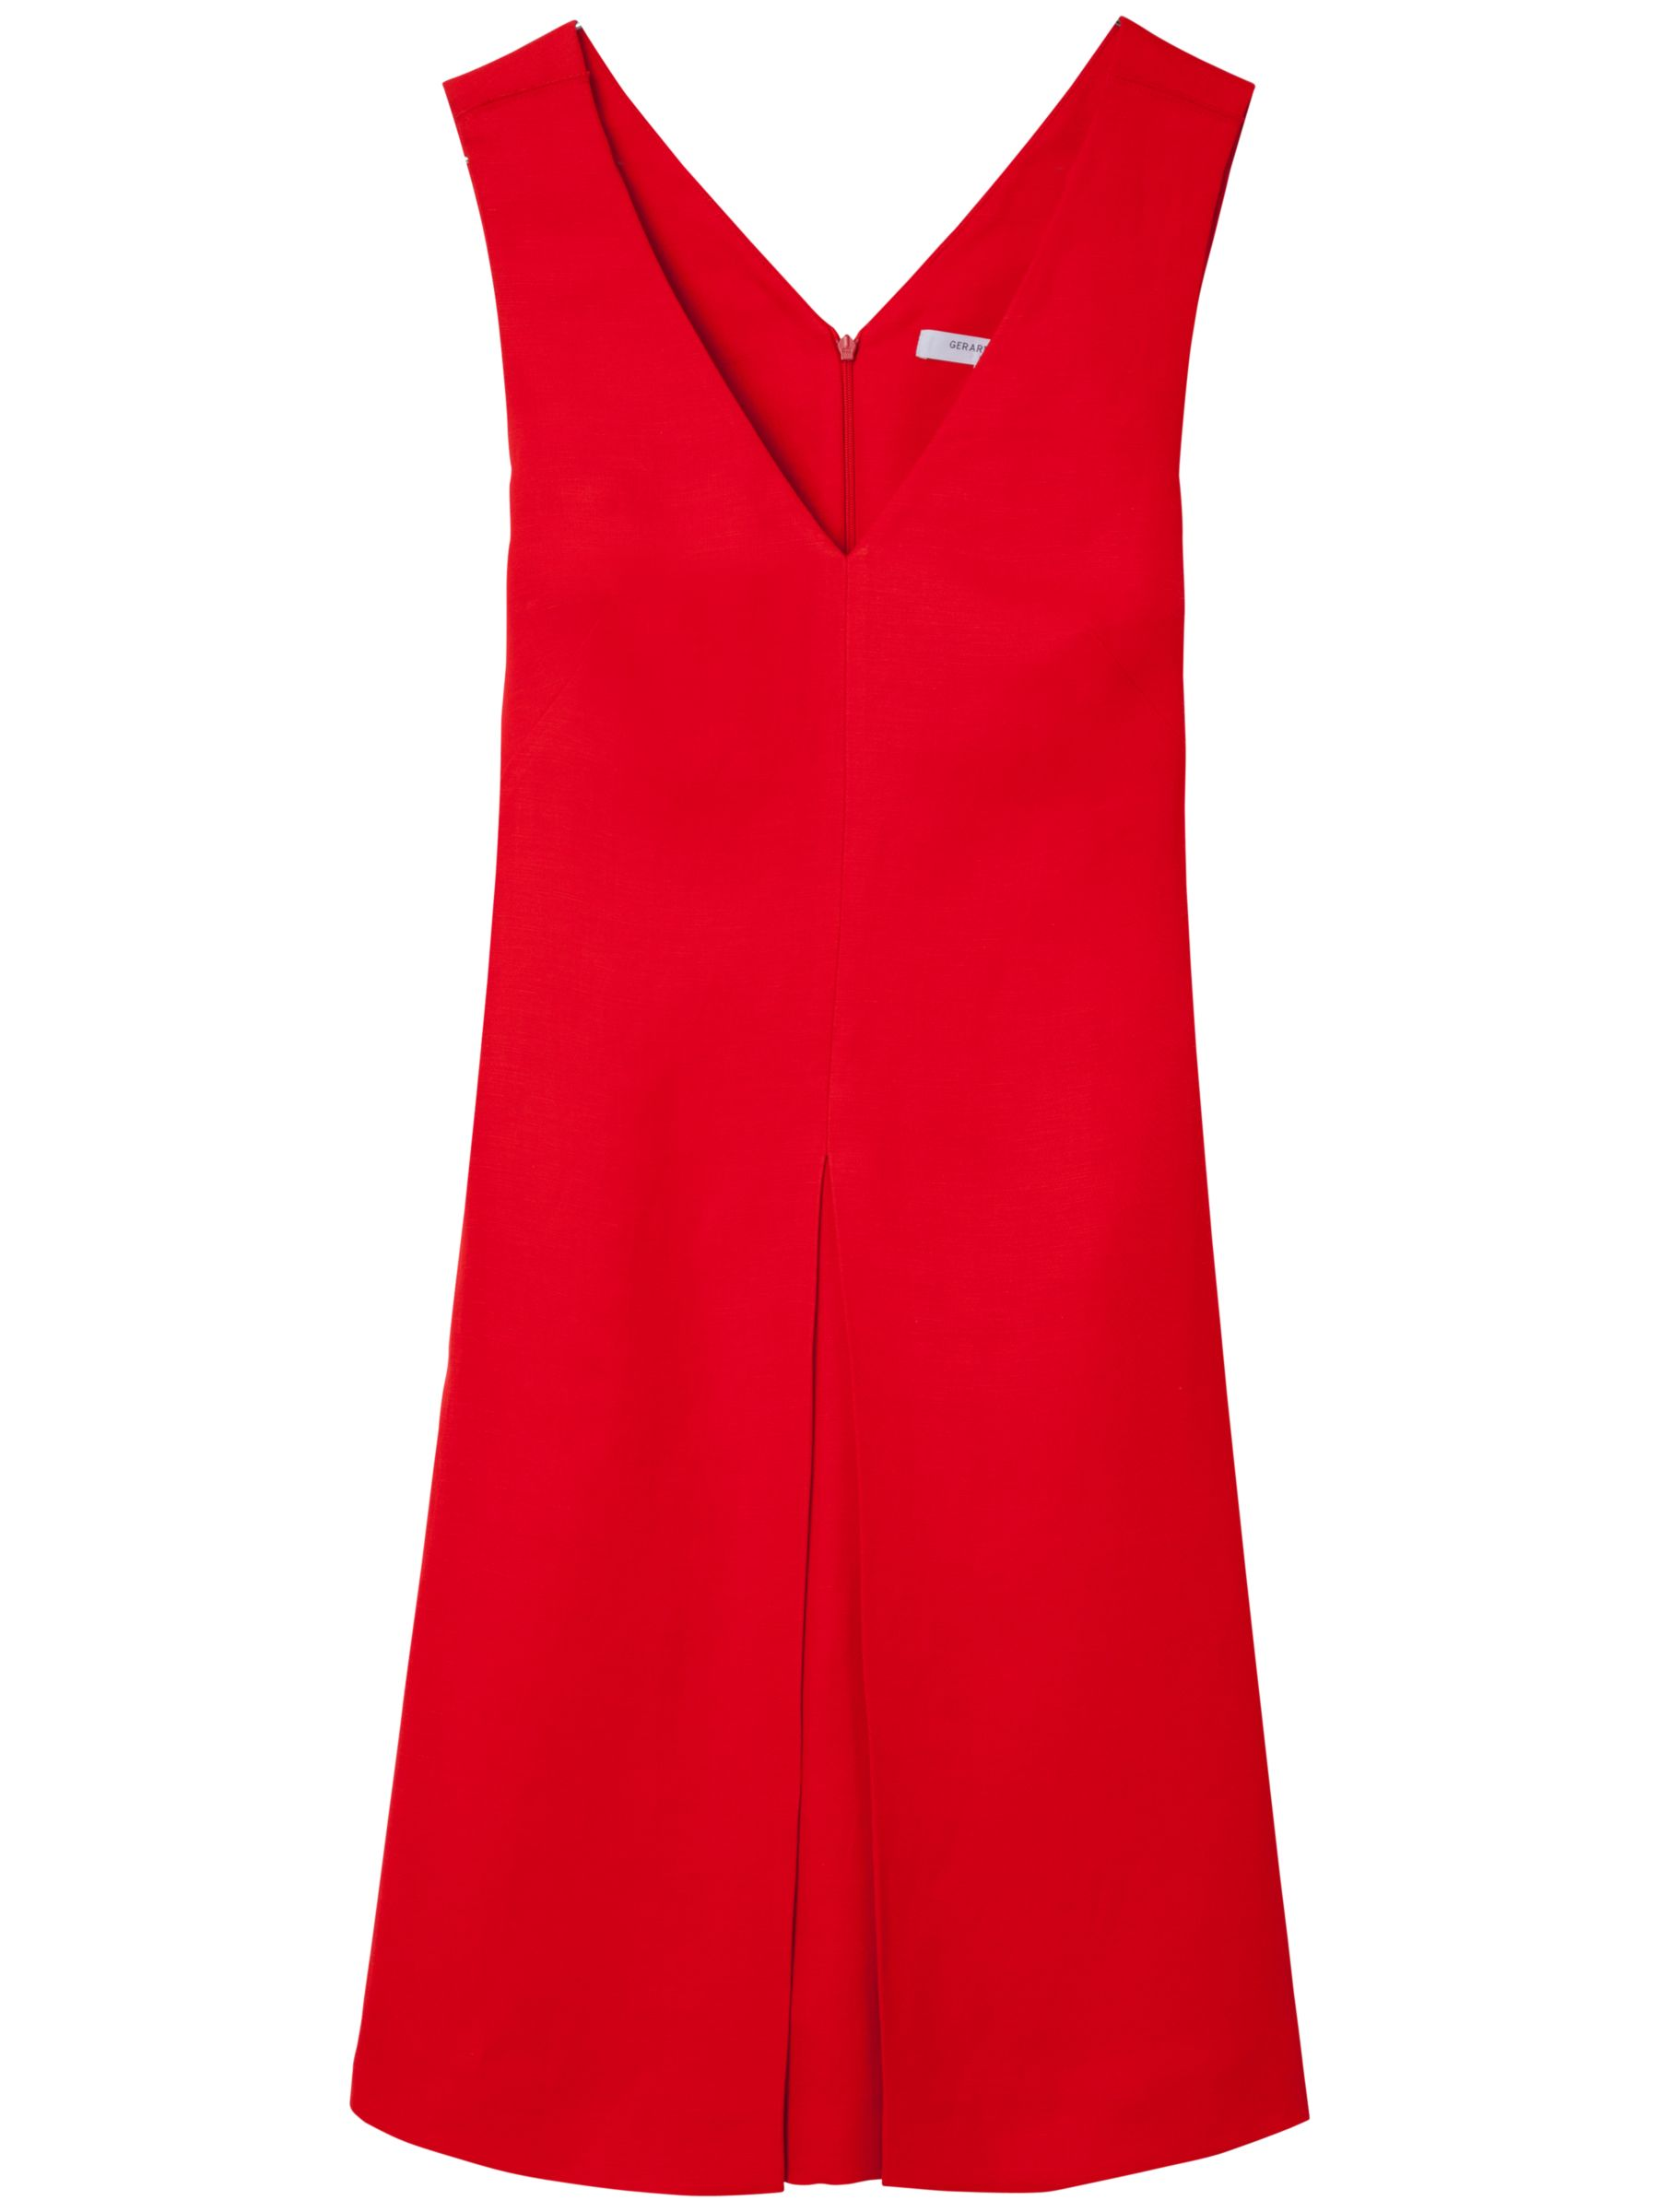 gerard darel aloevera dress red, gerard, darel, aloevera, dress, red, gerard darel, 8|12|10|16|18|14, women, womens dresses, 1917361